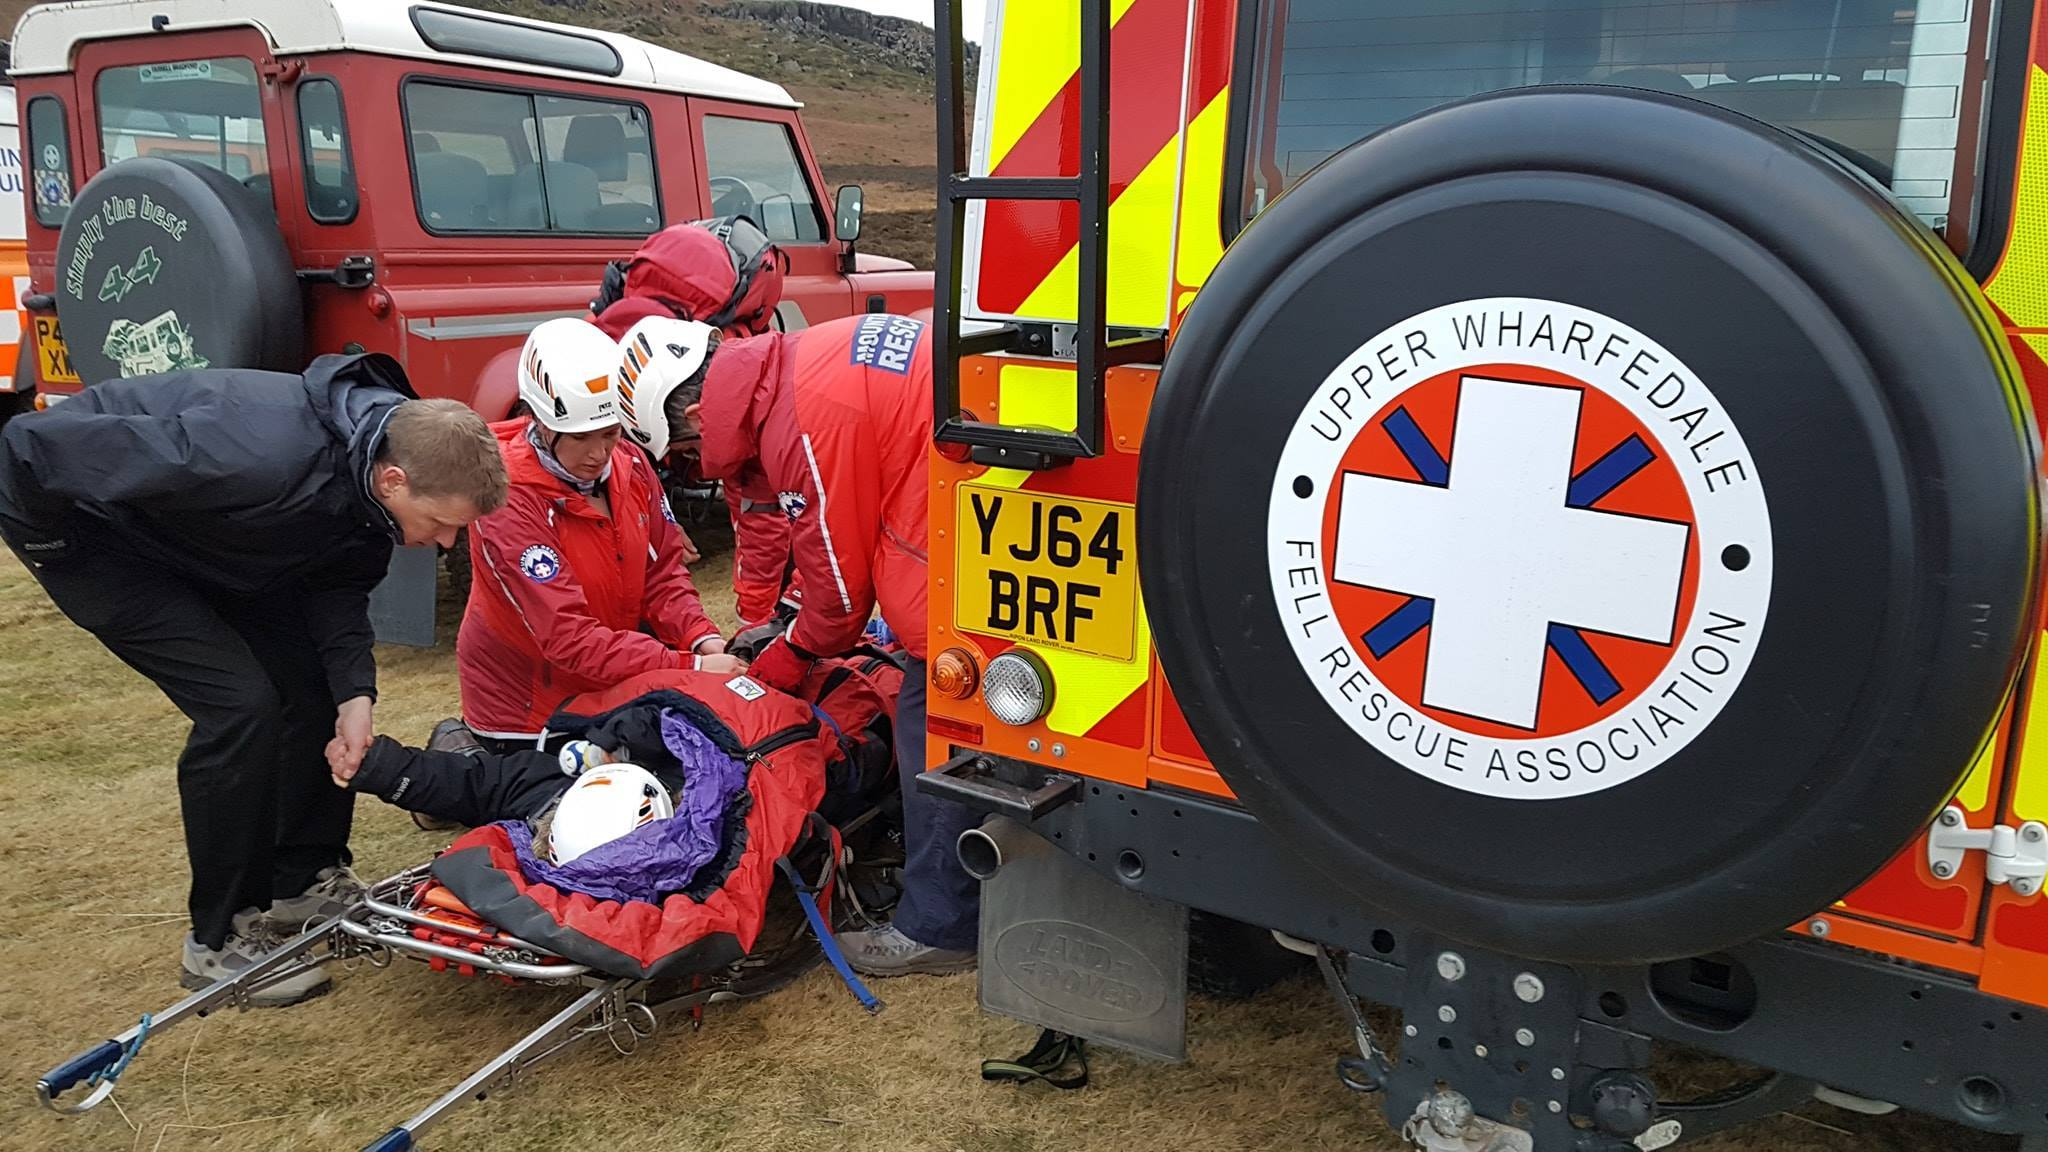 Upper Wharfedale Fell Rescue Association on Ilkley Moor on Friday, January 11. Photo courtesy of the Upper Wharfedale Fell Rescue Association